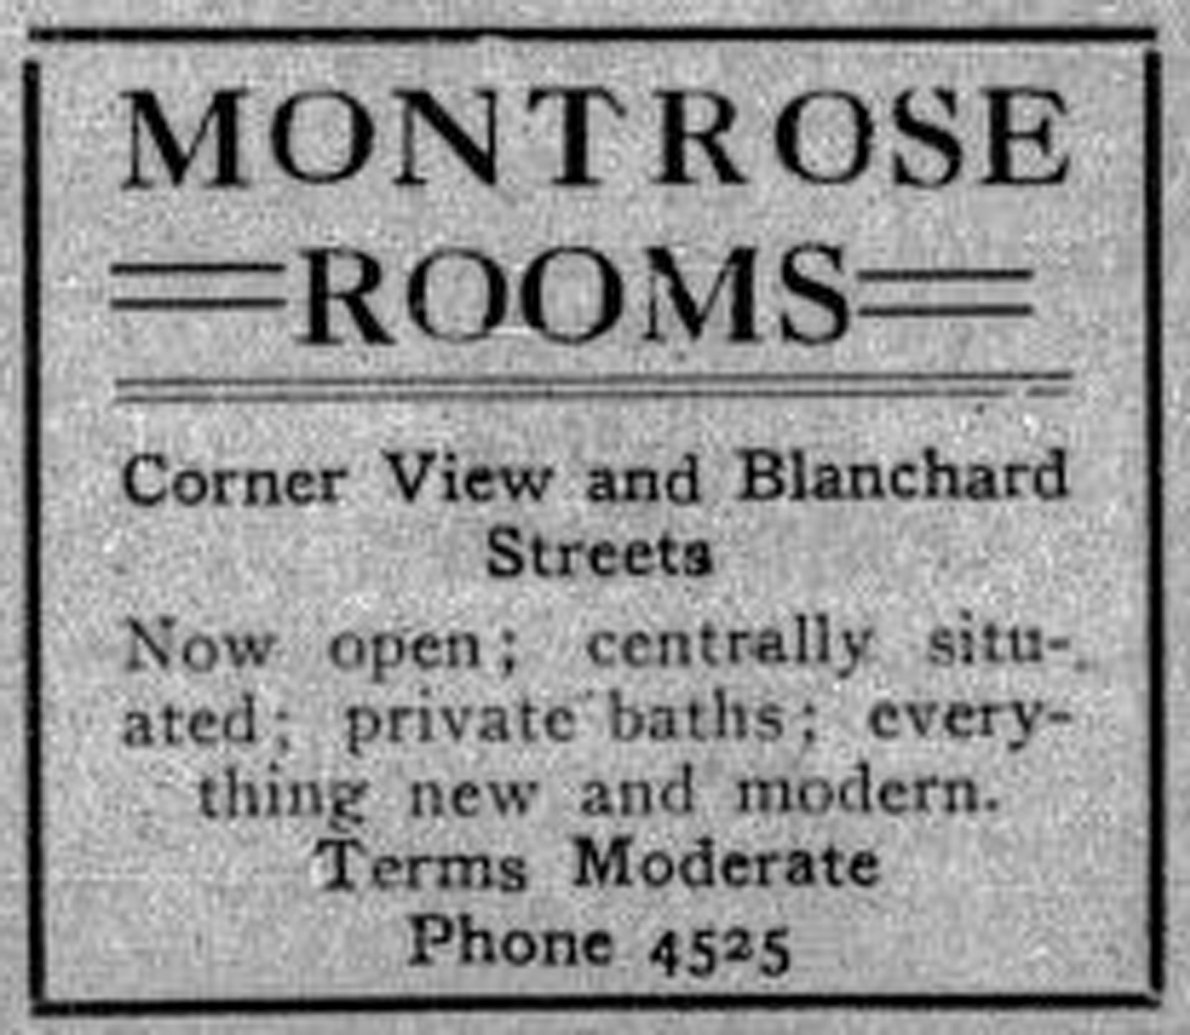 1913 advertisement for Montrose Rooms, corner View and Blanchard Streets. The Montrose Rooms, now known as the Montrose Apartments, is still standing at 1114-1126 Blanshard Street (Victoria Online Sightseeing Tours collection)